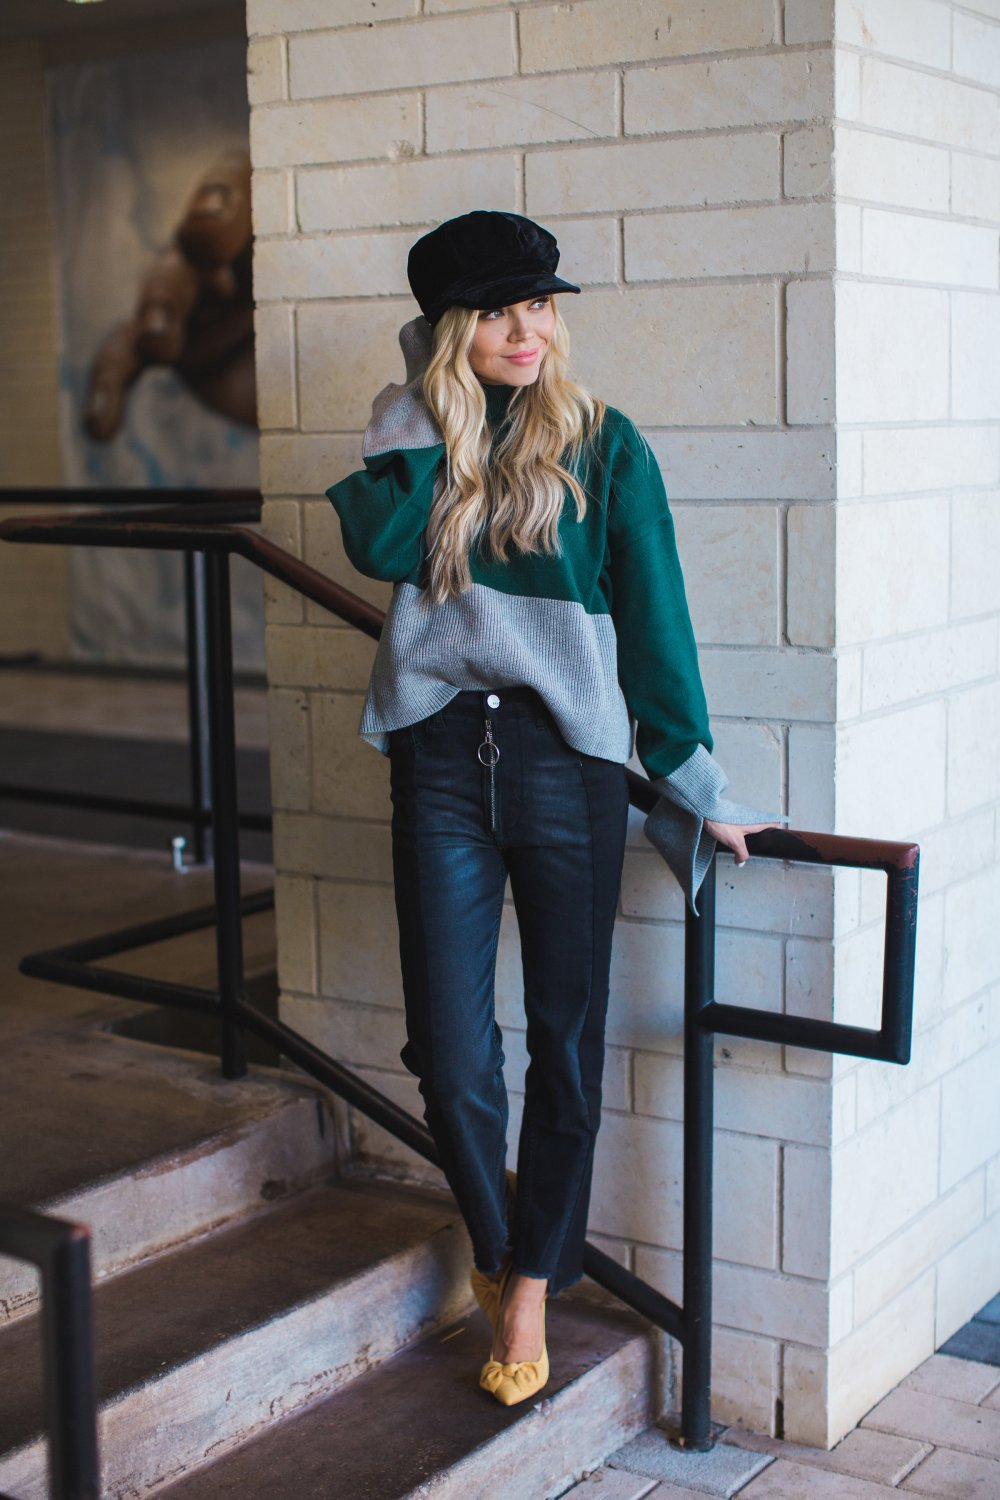 These high-waisted jeans and unique zipper detail complete this trendy fall outfit! The sweater is super soft and the velvet hat give off a cool vibe!